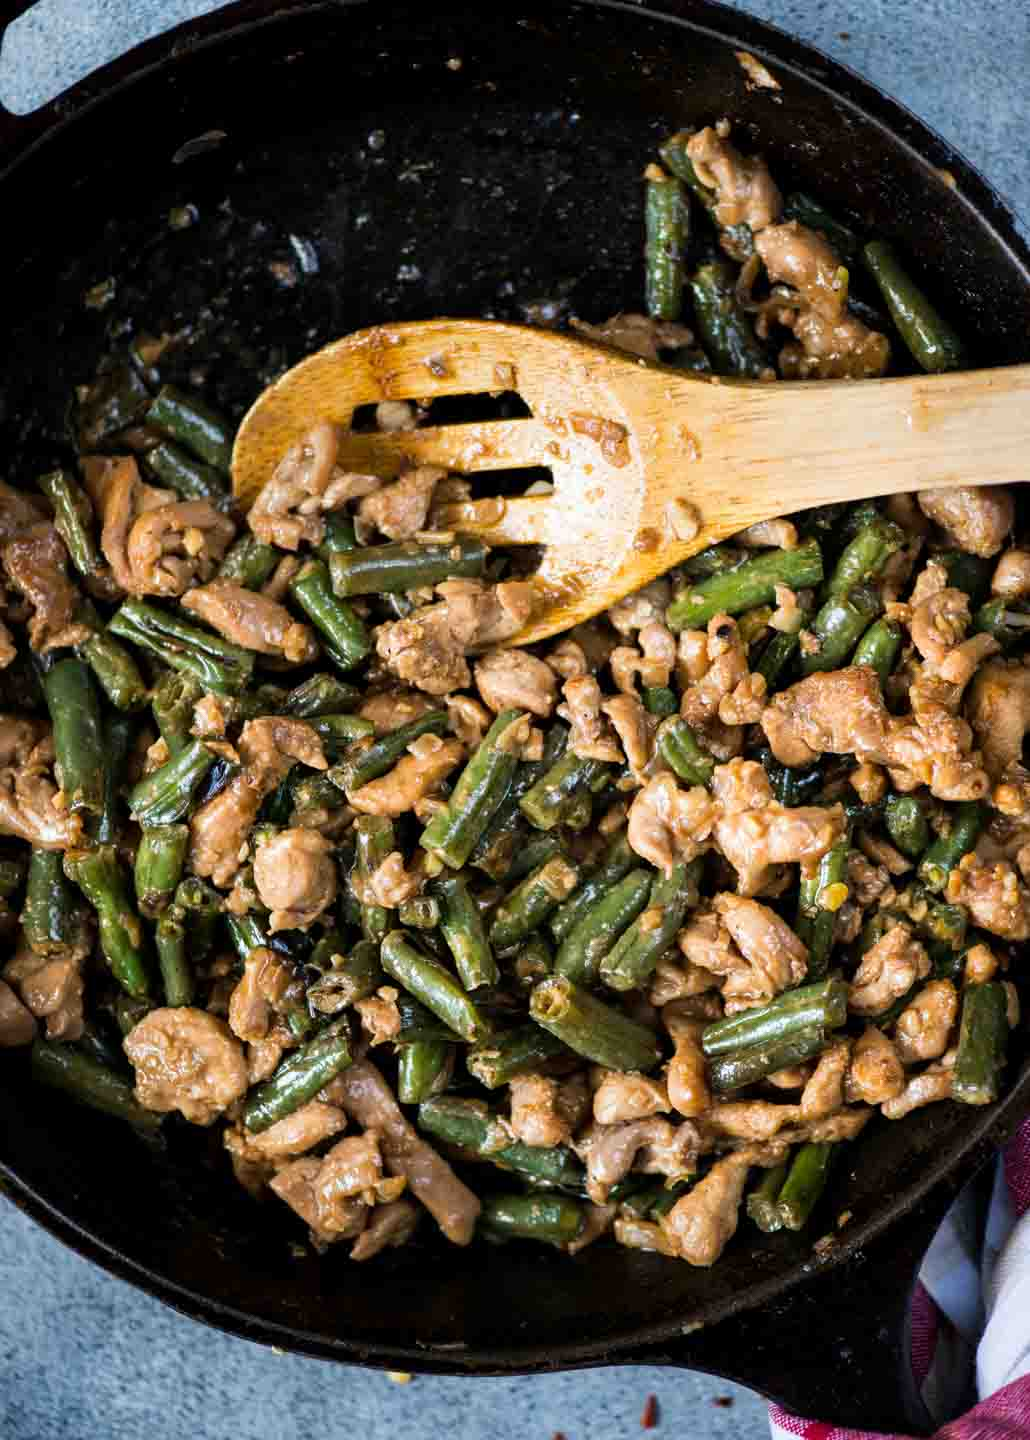 Green beans with chicken recipe